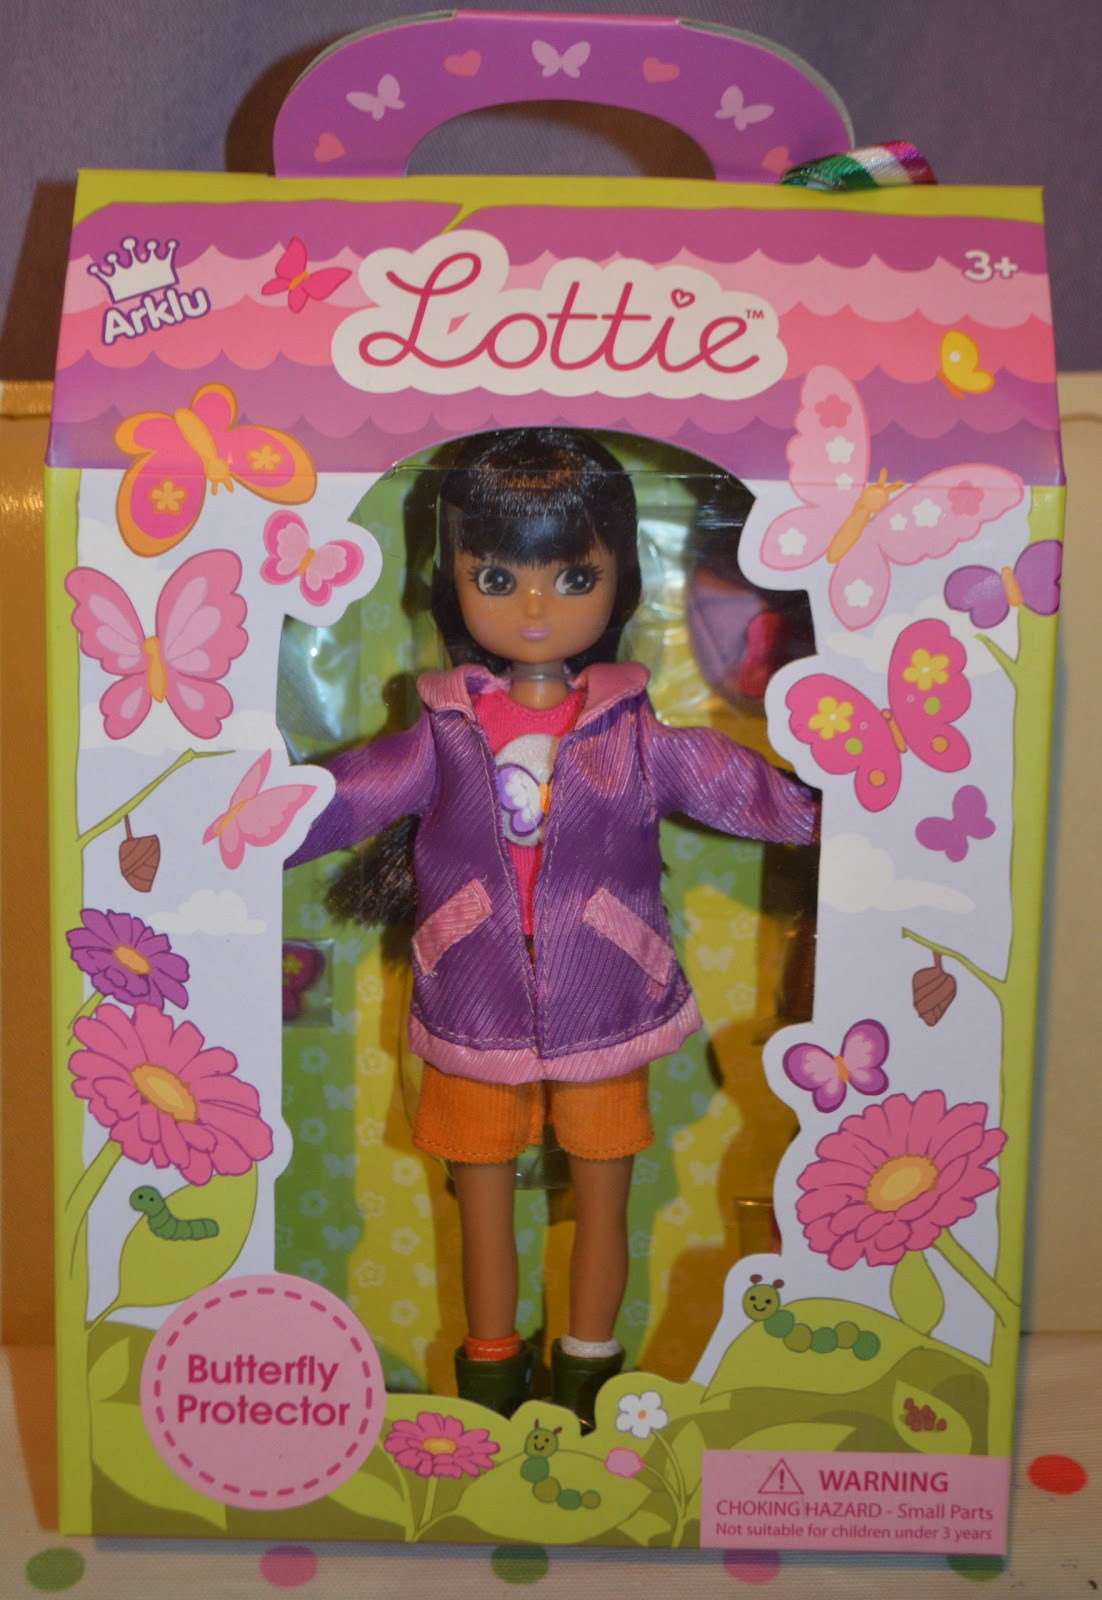 , Butterfly Protector Lottie Doll Review and Giveaway